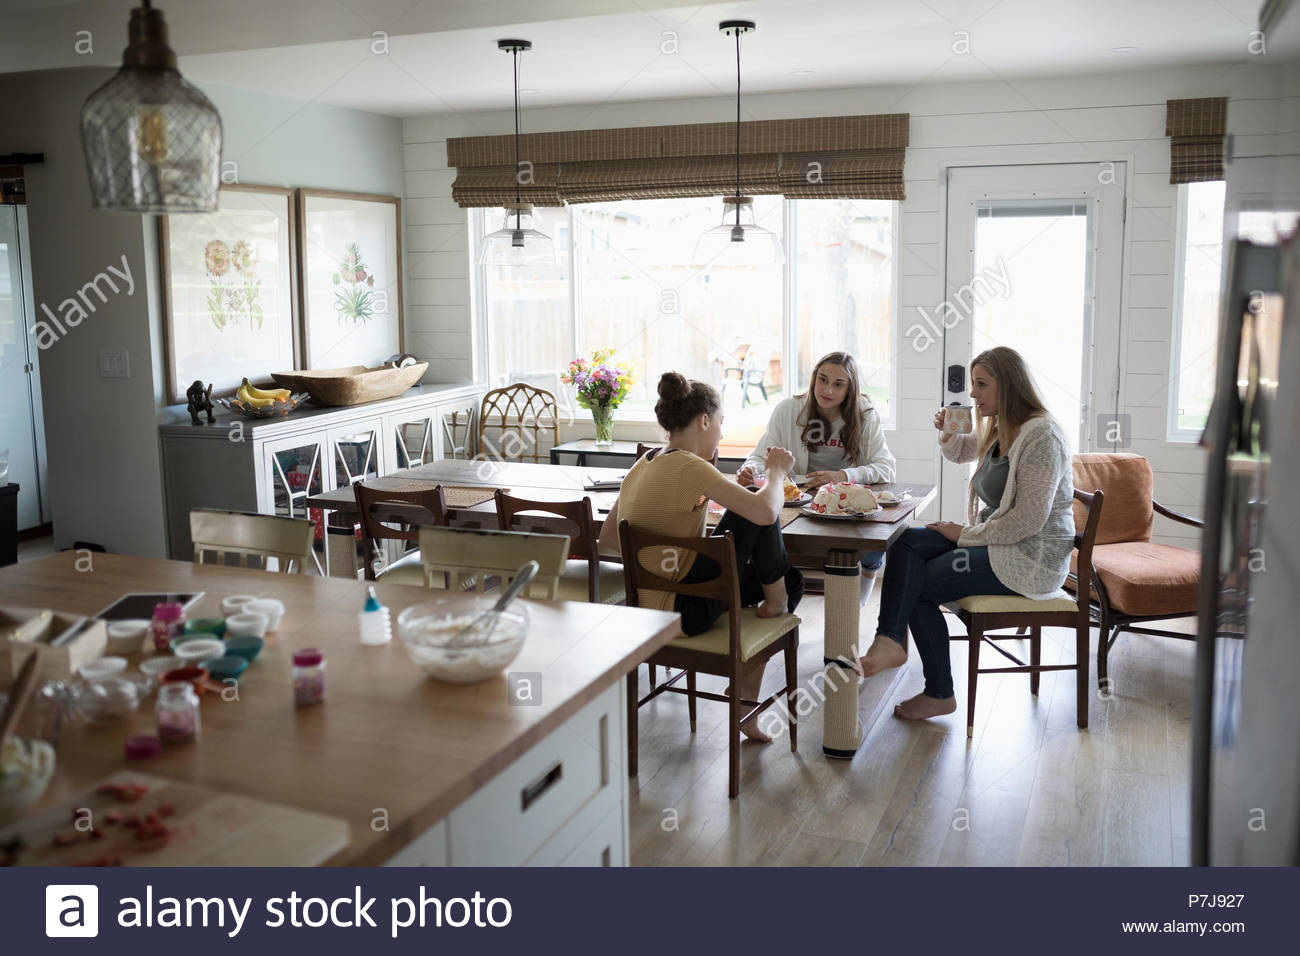 Mother and teenage daughters enjoying birthday cake at table - Stock Image